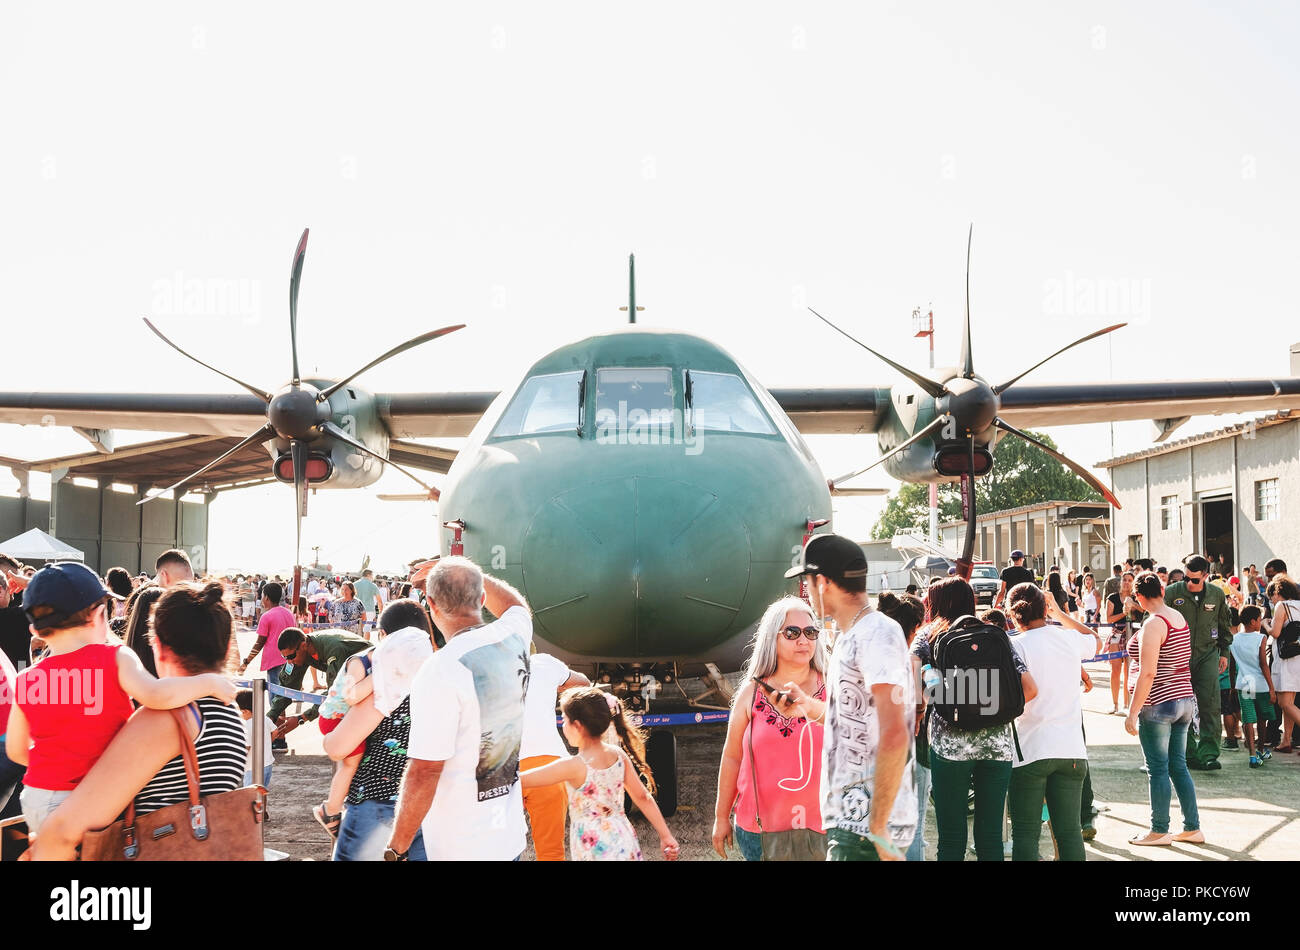 Campo Grande, Brazil - September 09, 2018: People at the military air base to visit the Portoes Abertos Ala 5. Event  open to the public. Airbus: 2806 - Stock Image